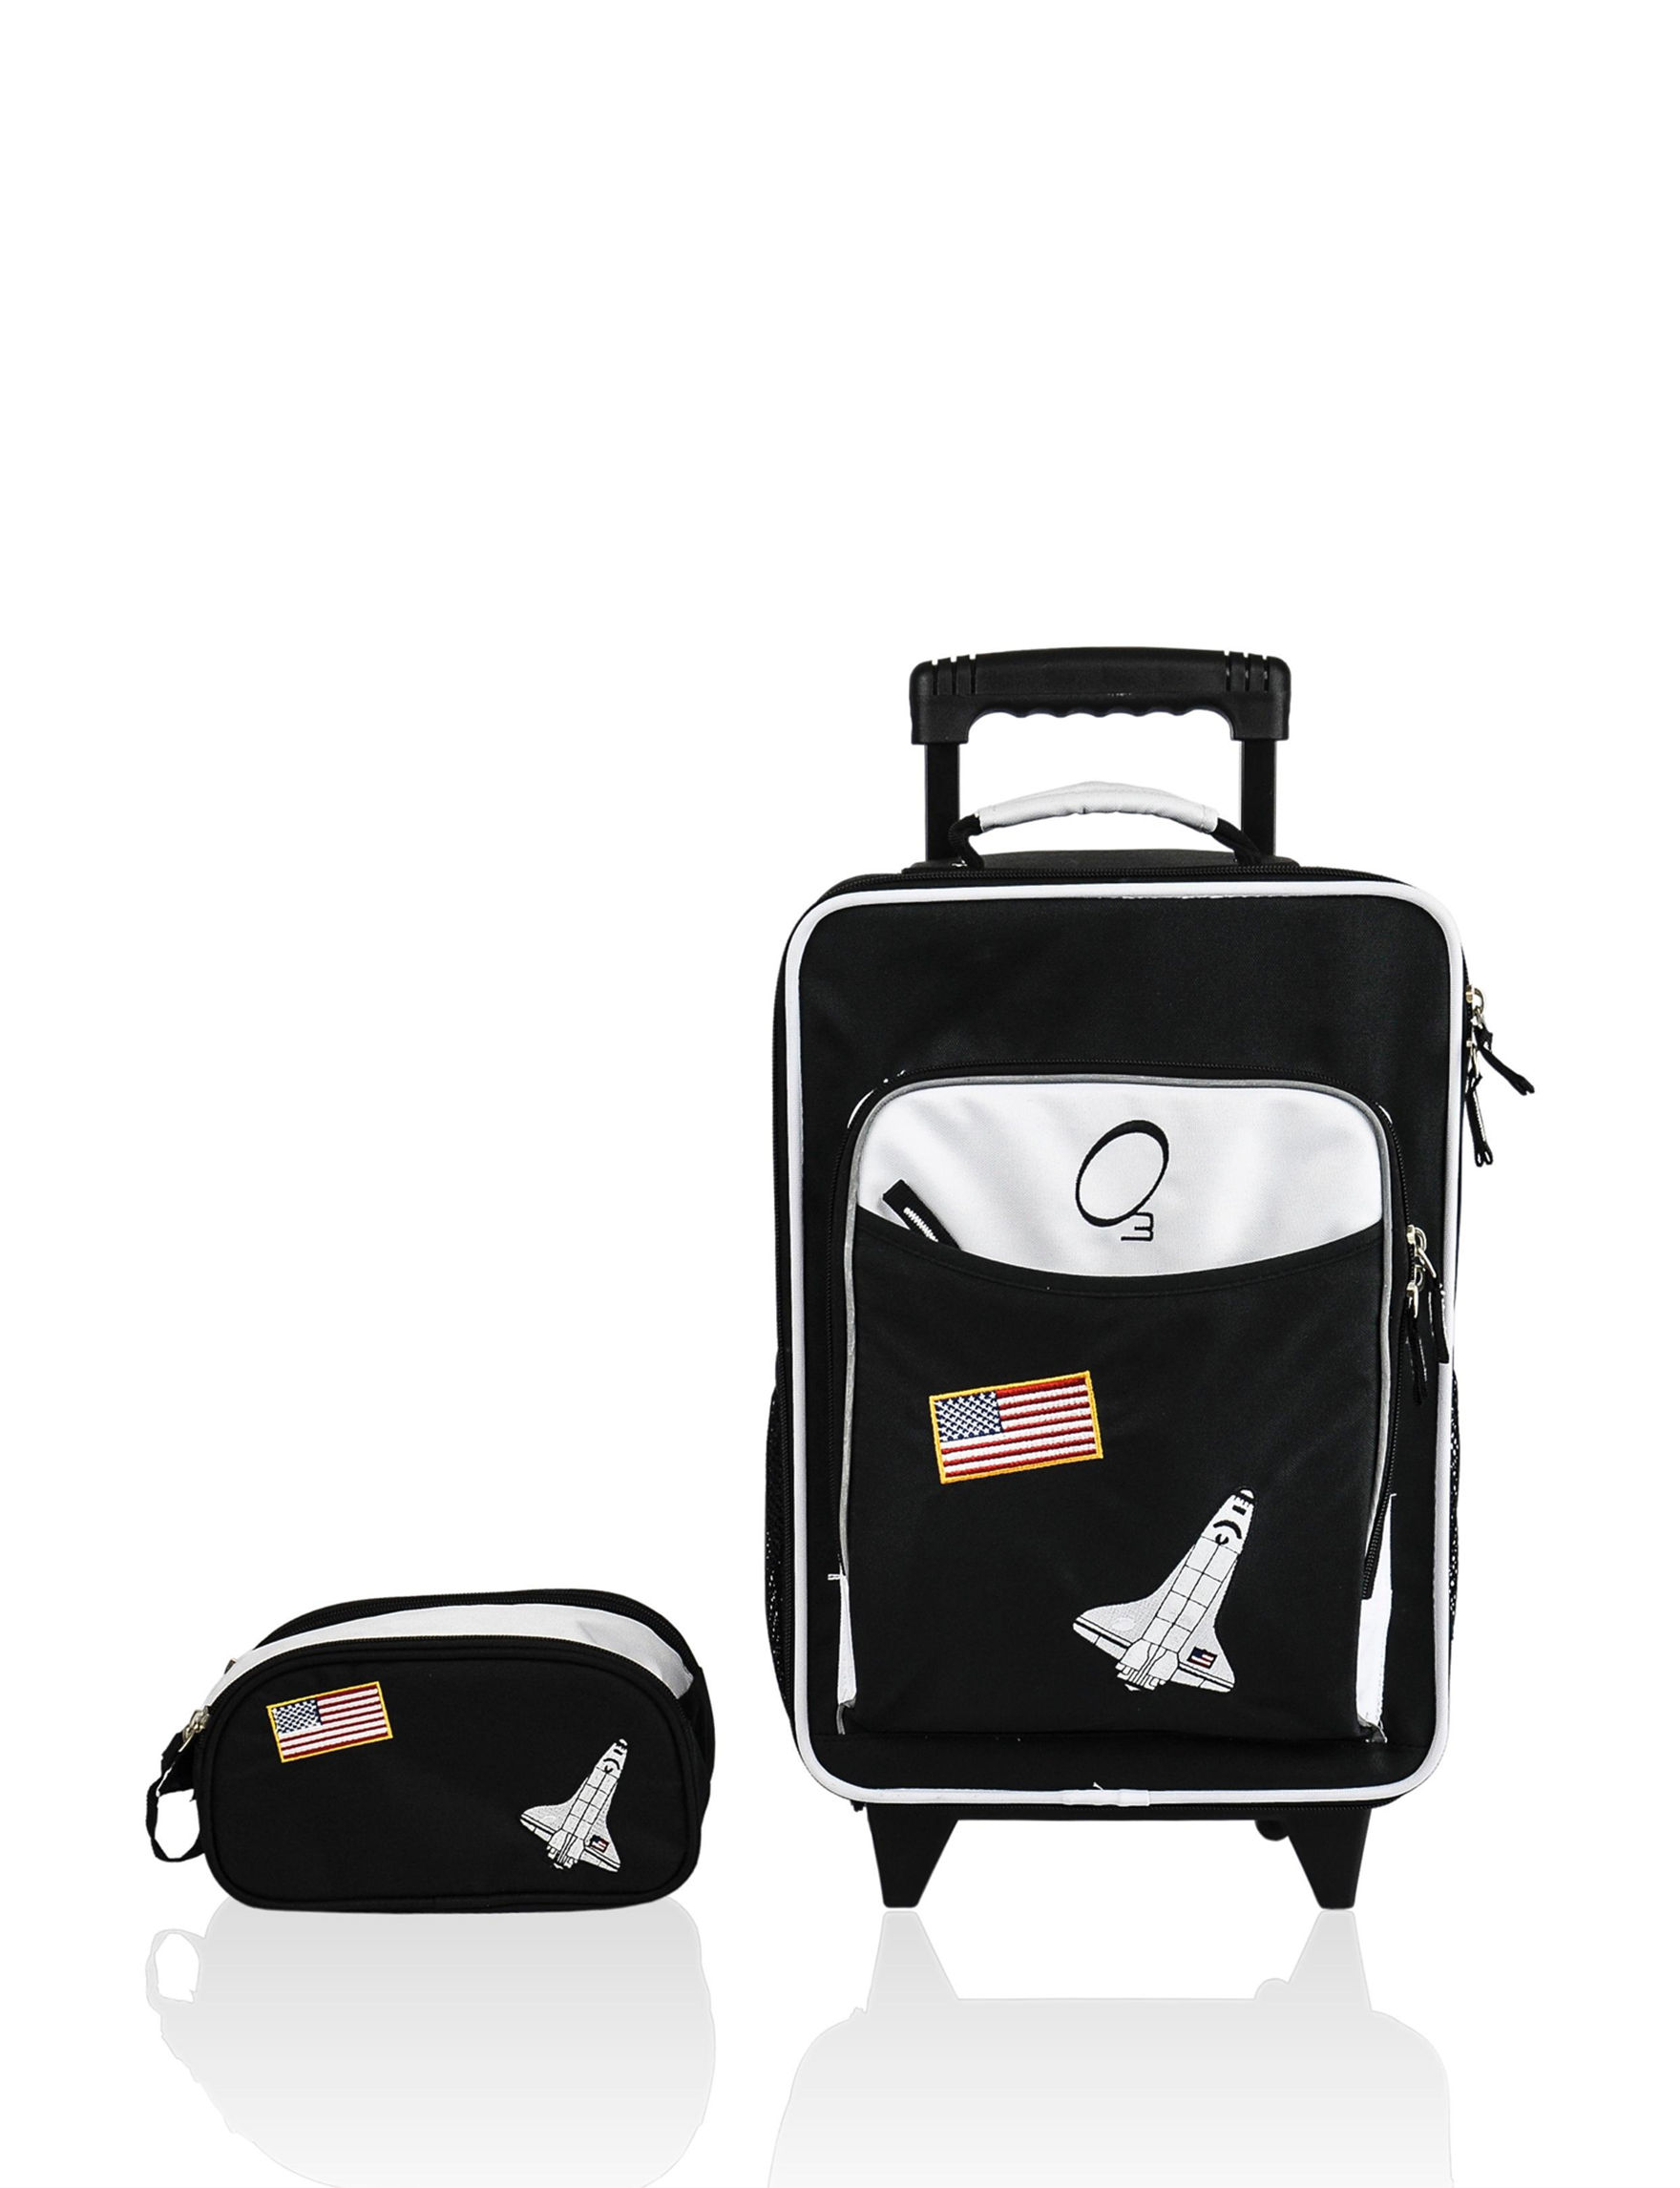 Obersee Black / White Luggage Sets